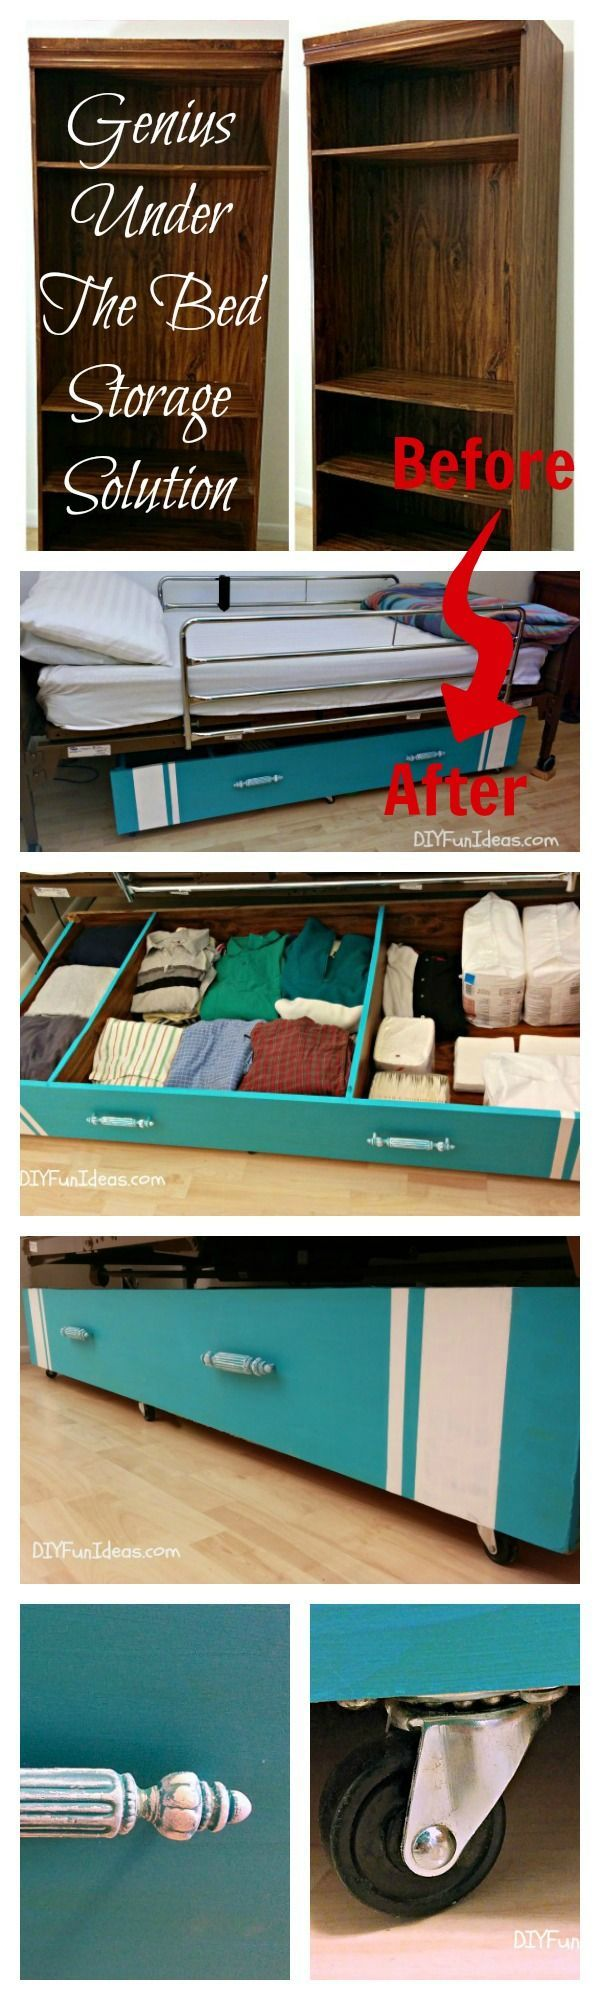 GENIUS DIY UNDER THE BED STORAGE SOLUTION.  Great upcycle idea for storage under…